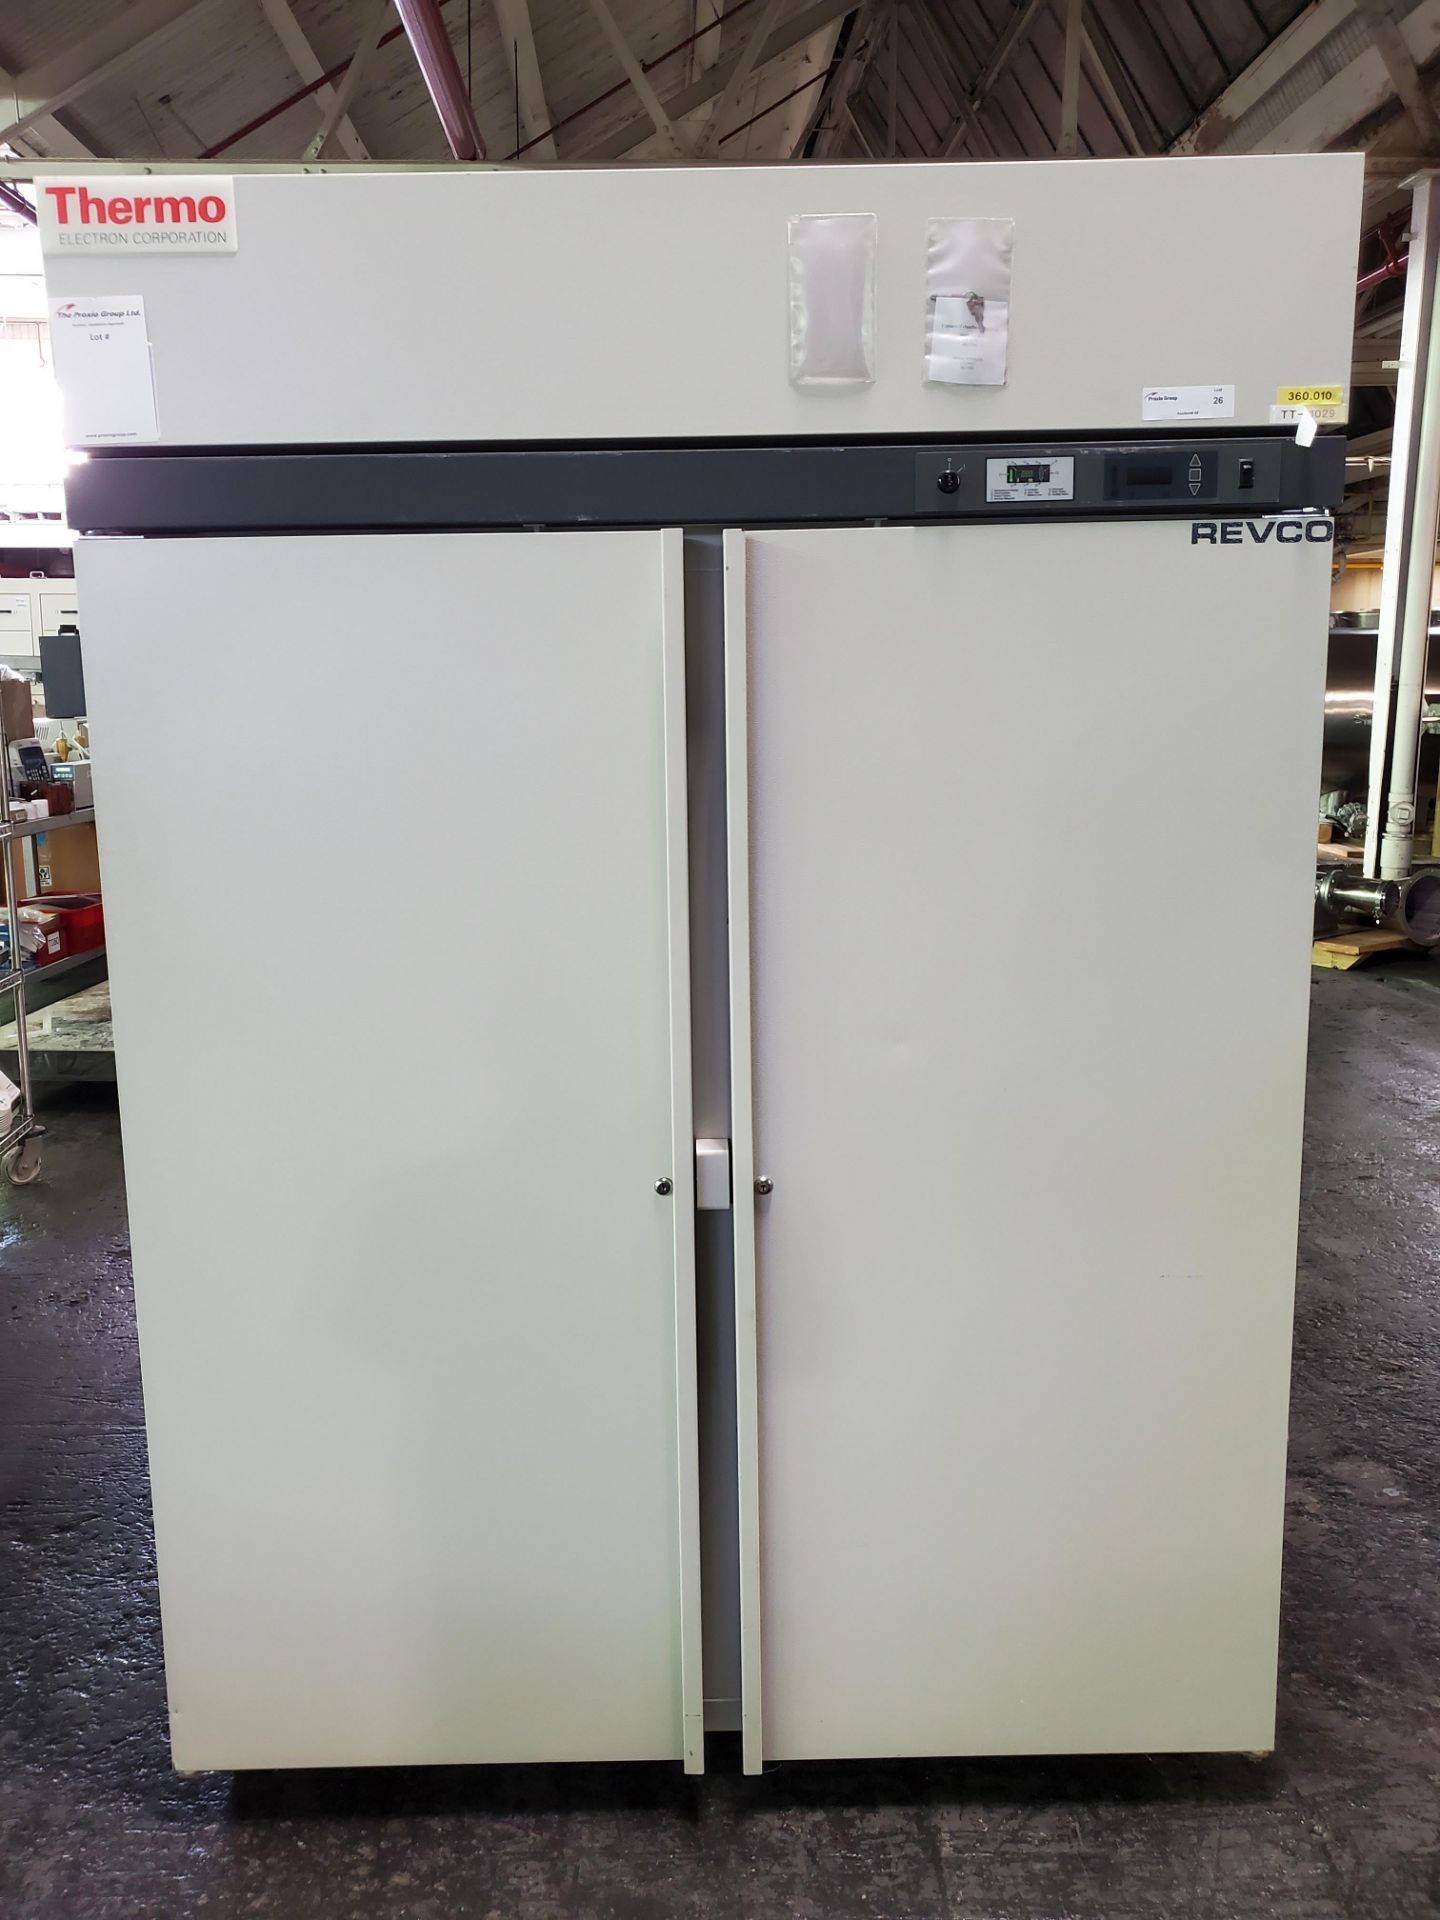 "Lot 26 - Revco/Thermo Electron Freezer, model REL5004A21, 53"" wide x 25""deep x 53"" high chamber, R134a"